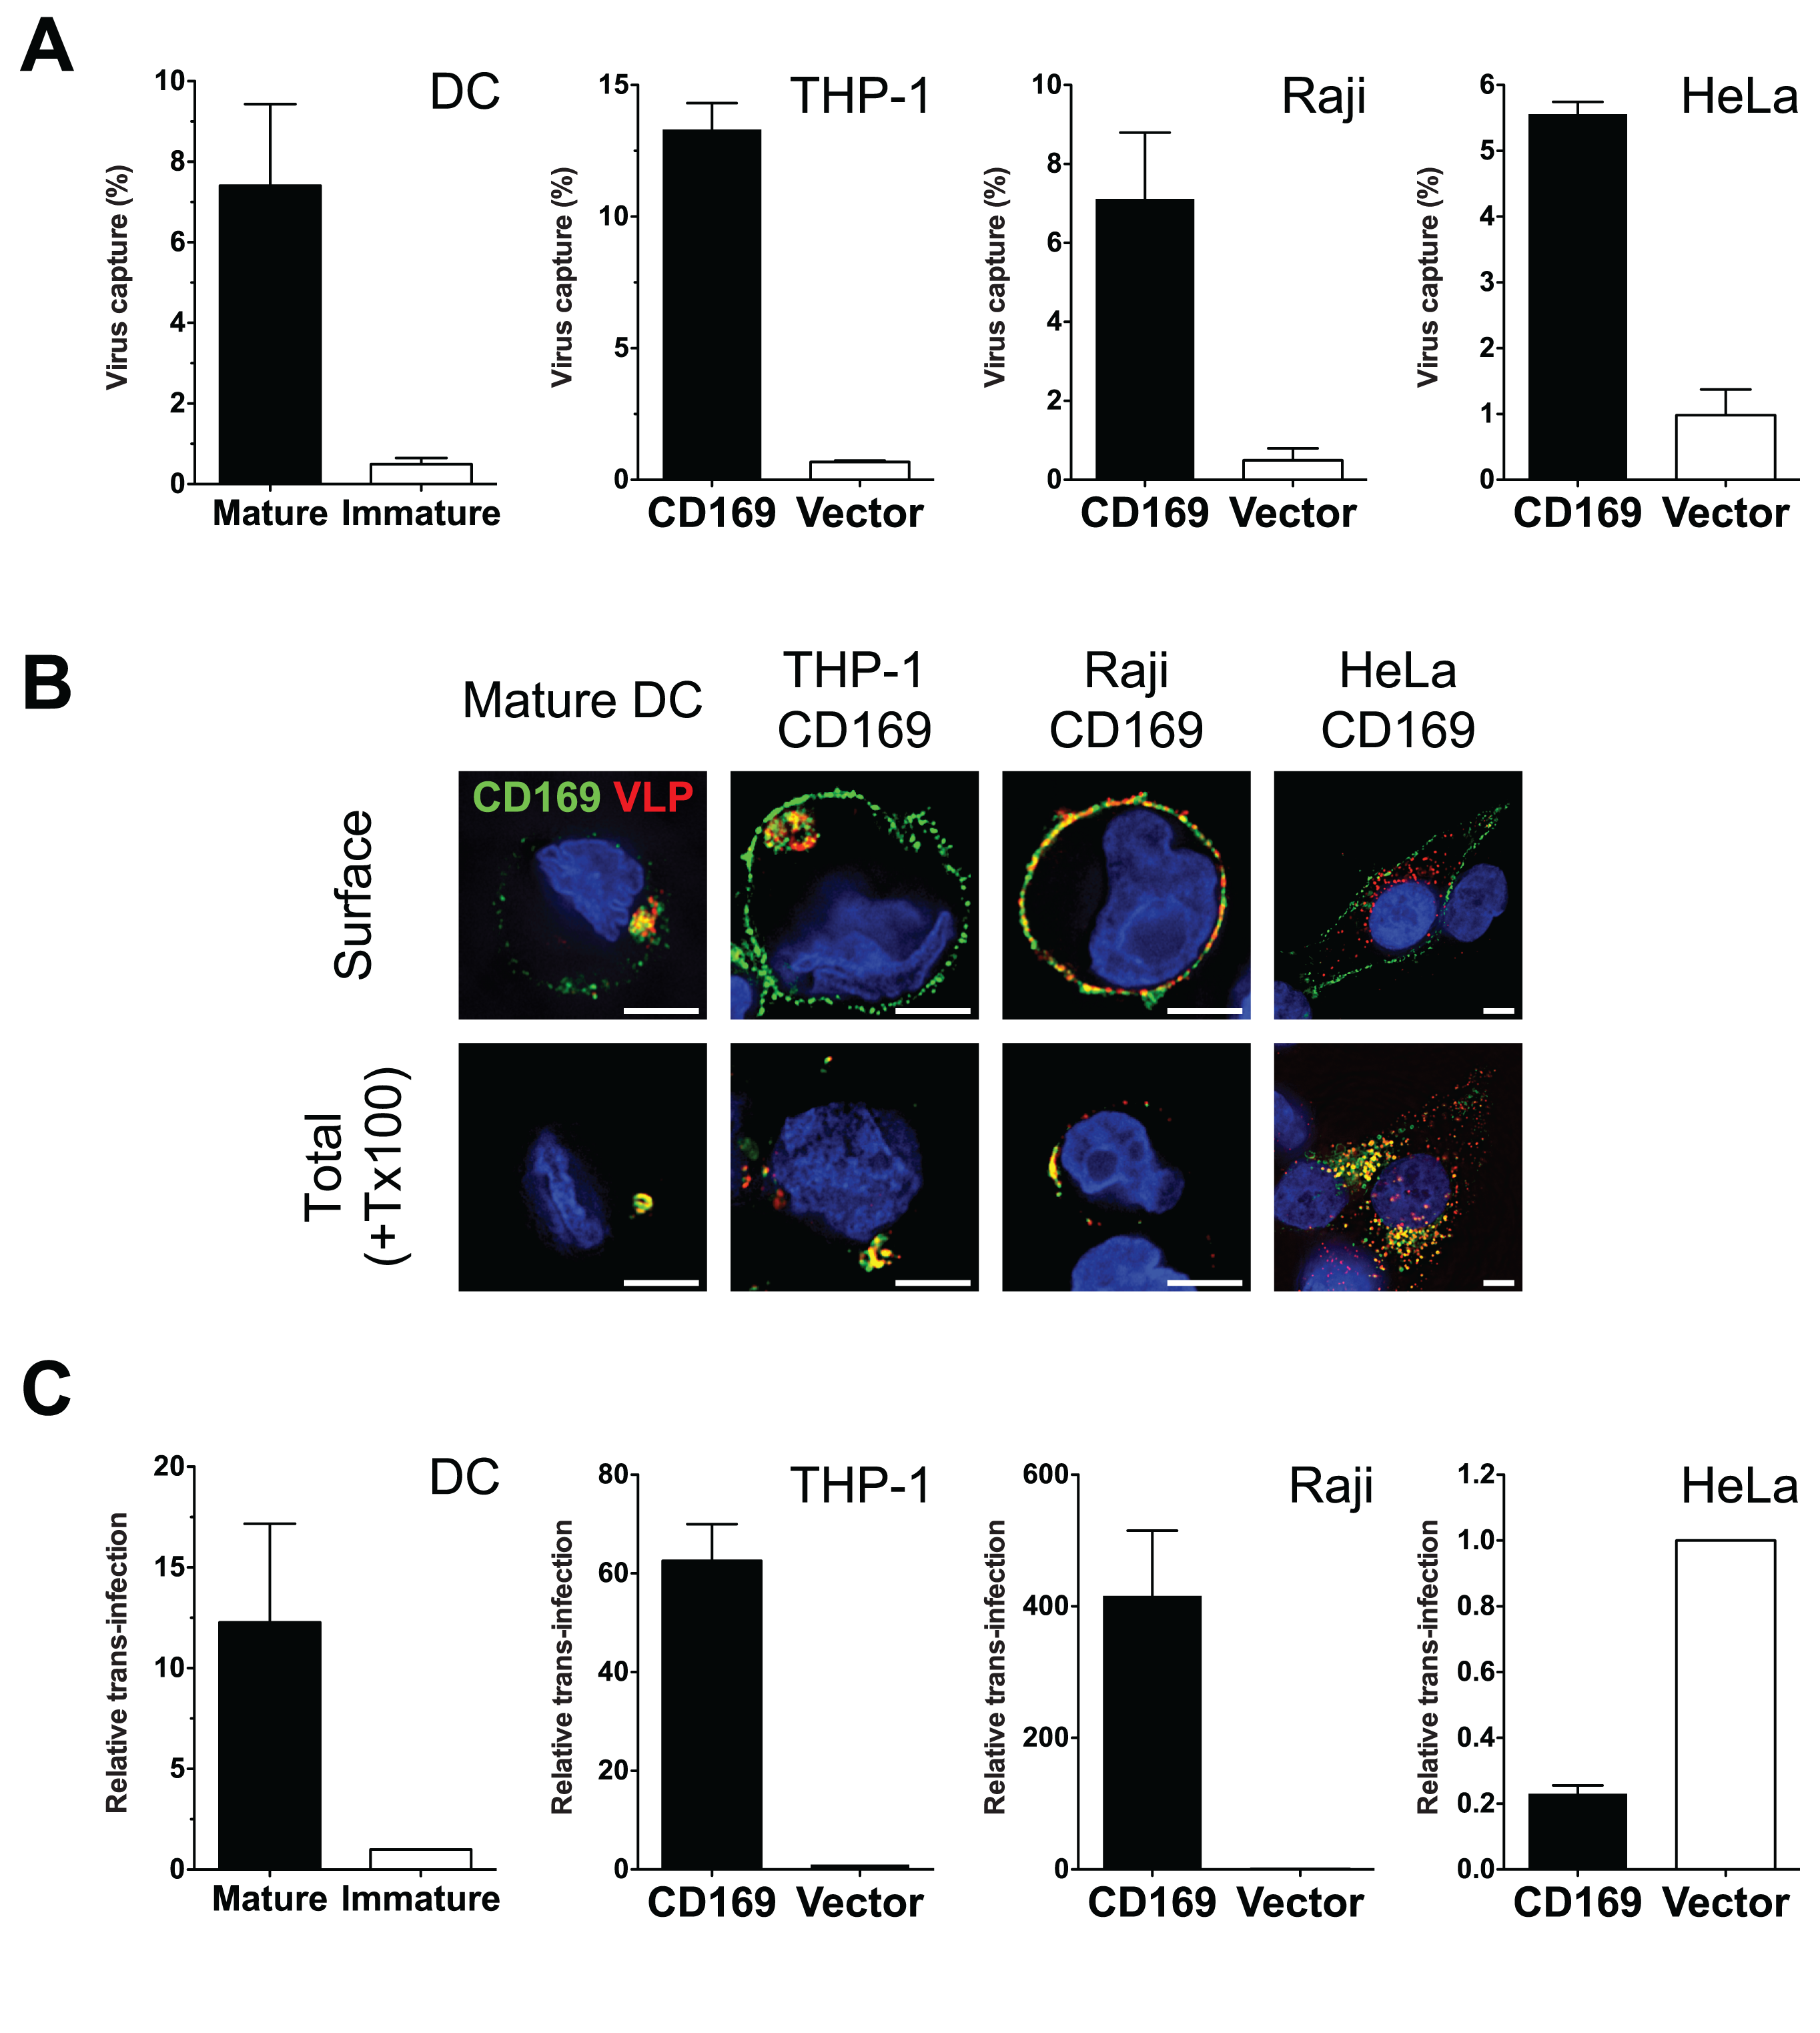 THP-1/CD169 cells recapitulate mature DC-mediated HIV-1 capture, trafficking and trans-infection of CD4<sup>+</sup> T cells.